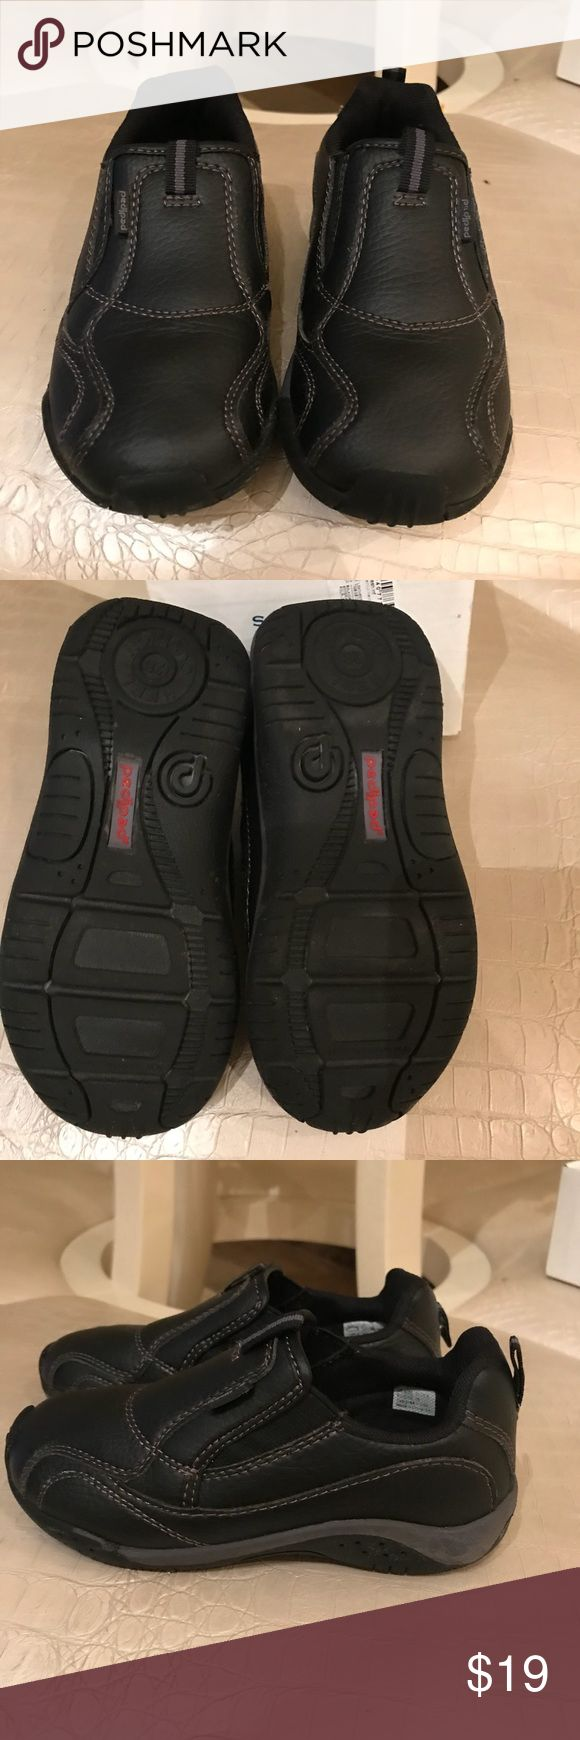 NWOT toddler boys shoe Black leather dress/semi casual but very comfortable shoe with flexible soft sole. This brand is known for comfort and quality. pediped Shoes Dress Shoes